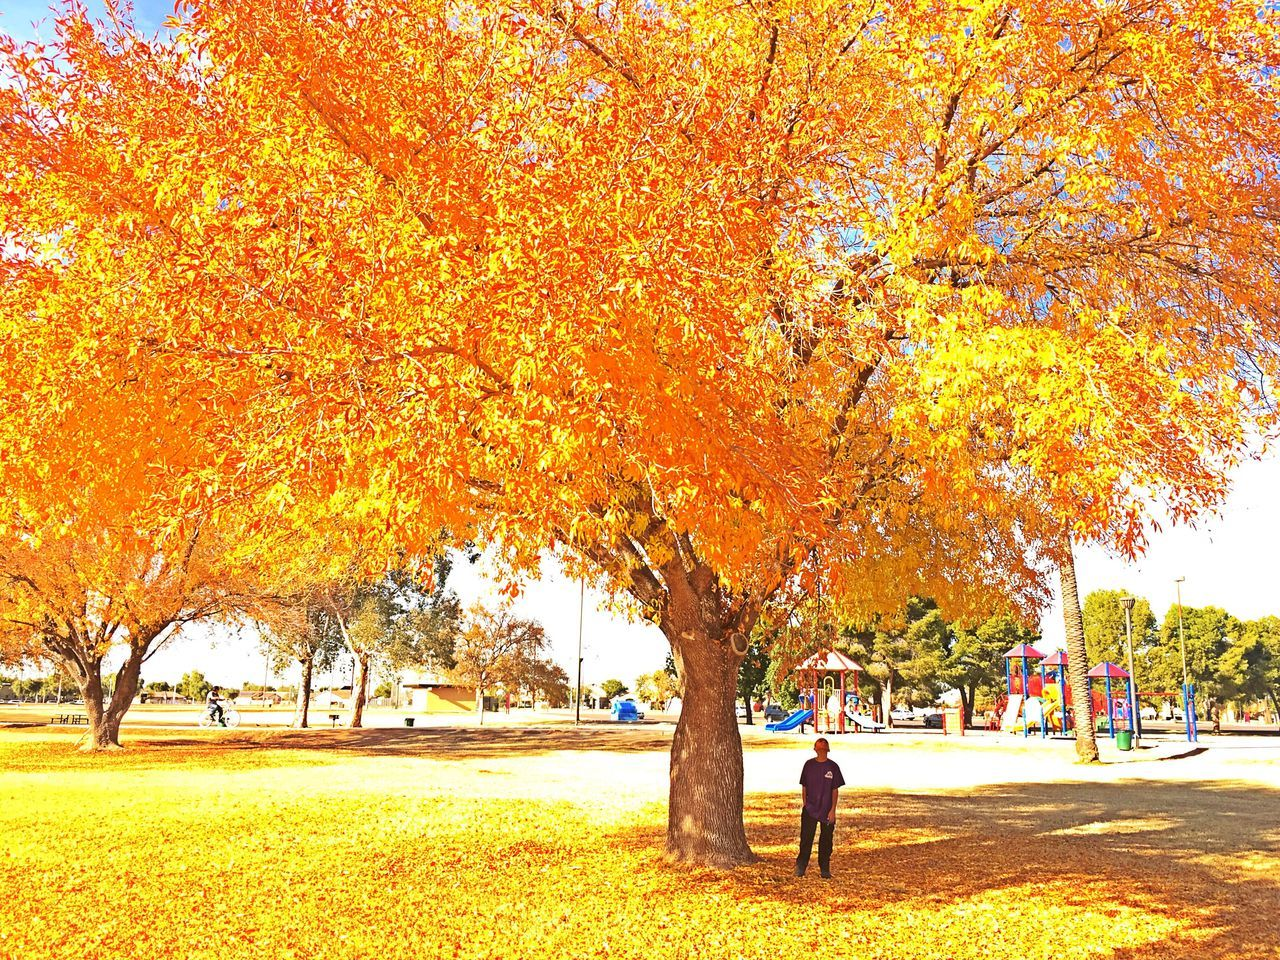 autumn, change, tree, leaf, orange color, nature, real people, beauty in nature, park - man made space, full length, leisure activity, outdoors, tree trunk, day, growth, lifestyles, maple tree, men, scenics, standing, maple, one person, filming, adult, people